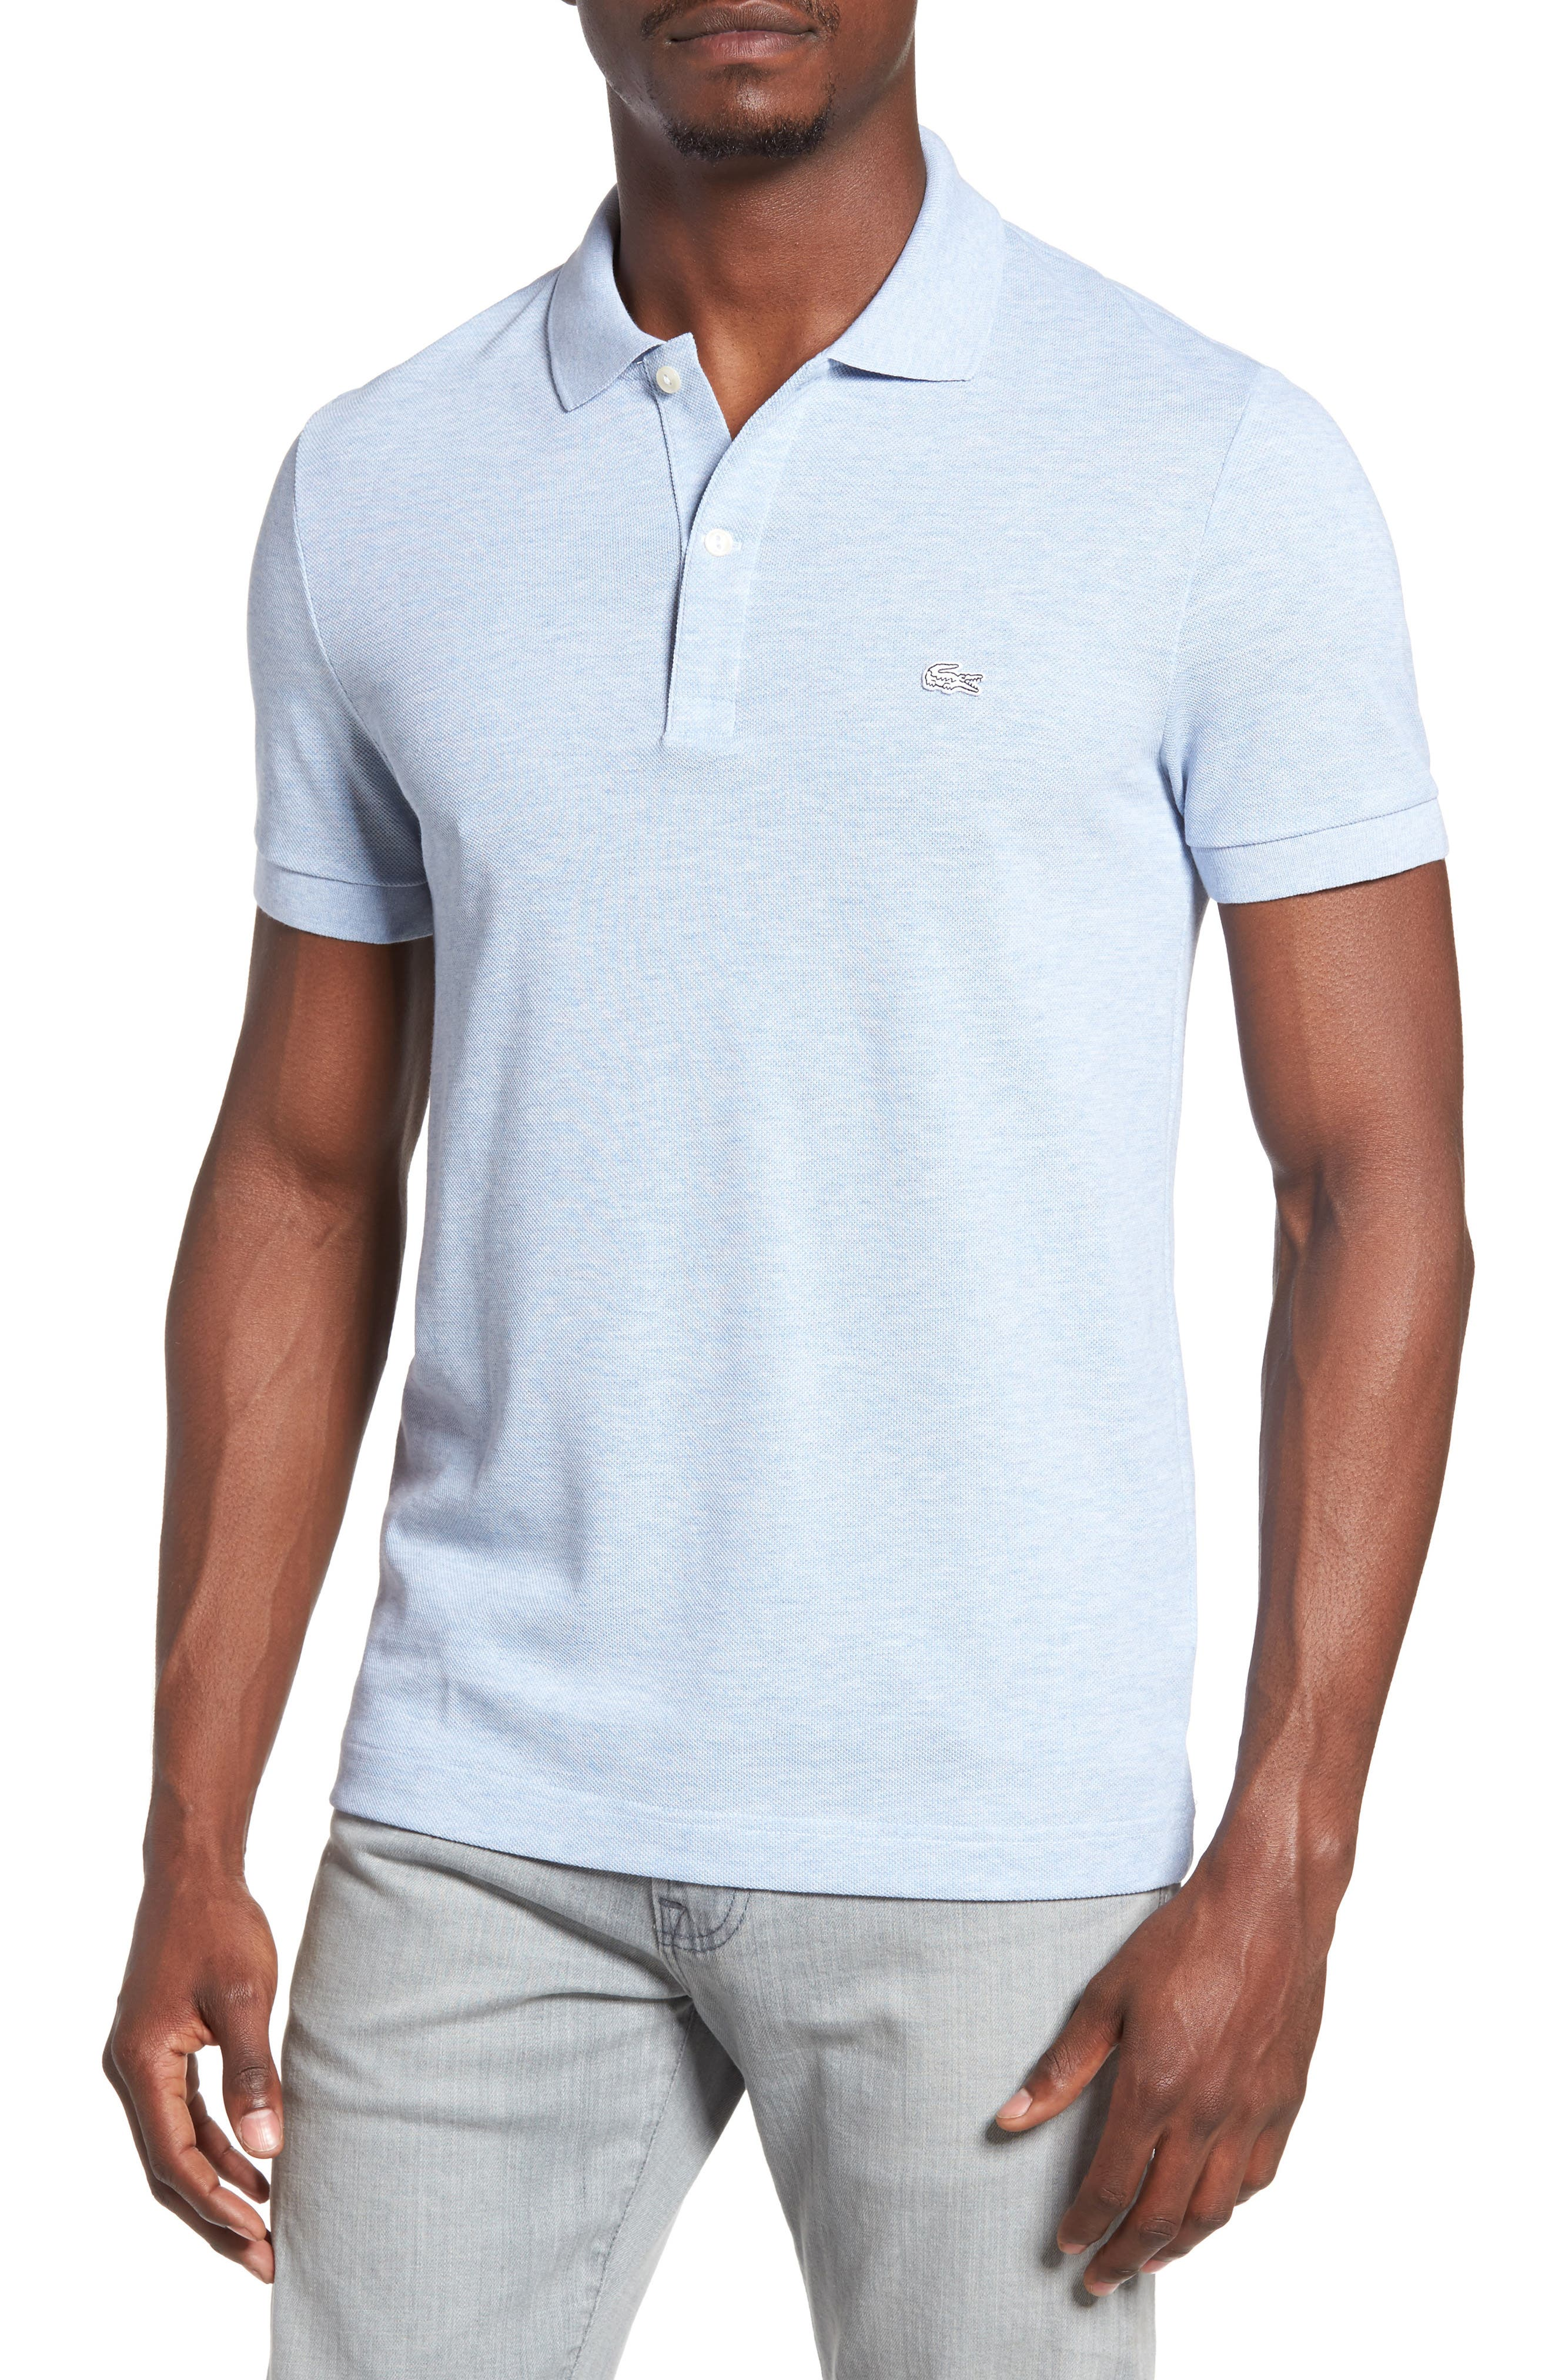 Alternate Image 1 Selected - Lacoste 'White Croc' Regular Fit Piqué Polo (Nordstrom Exclusive)